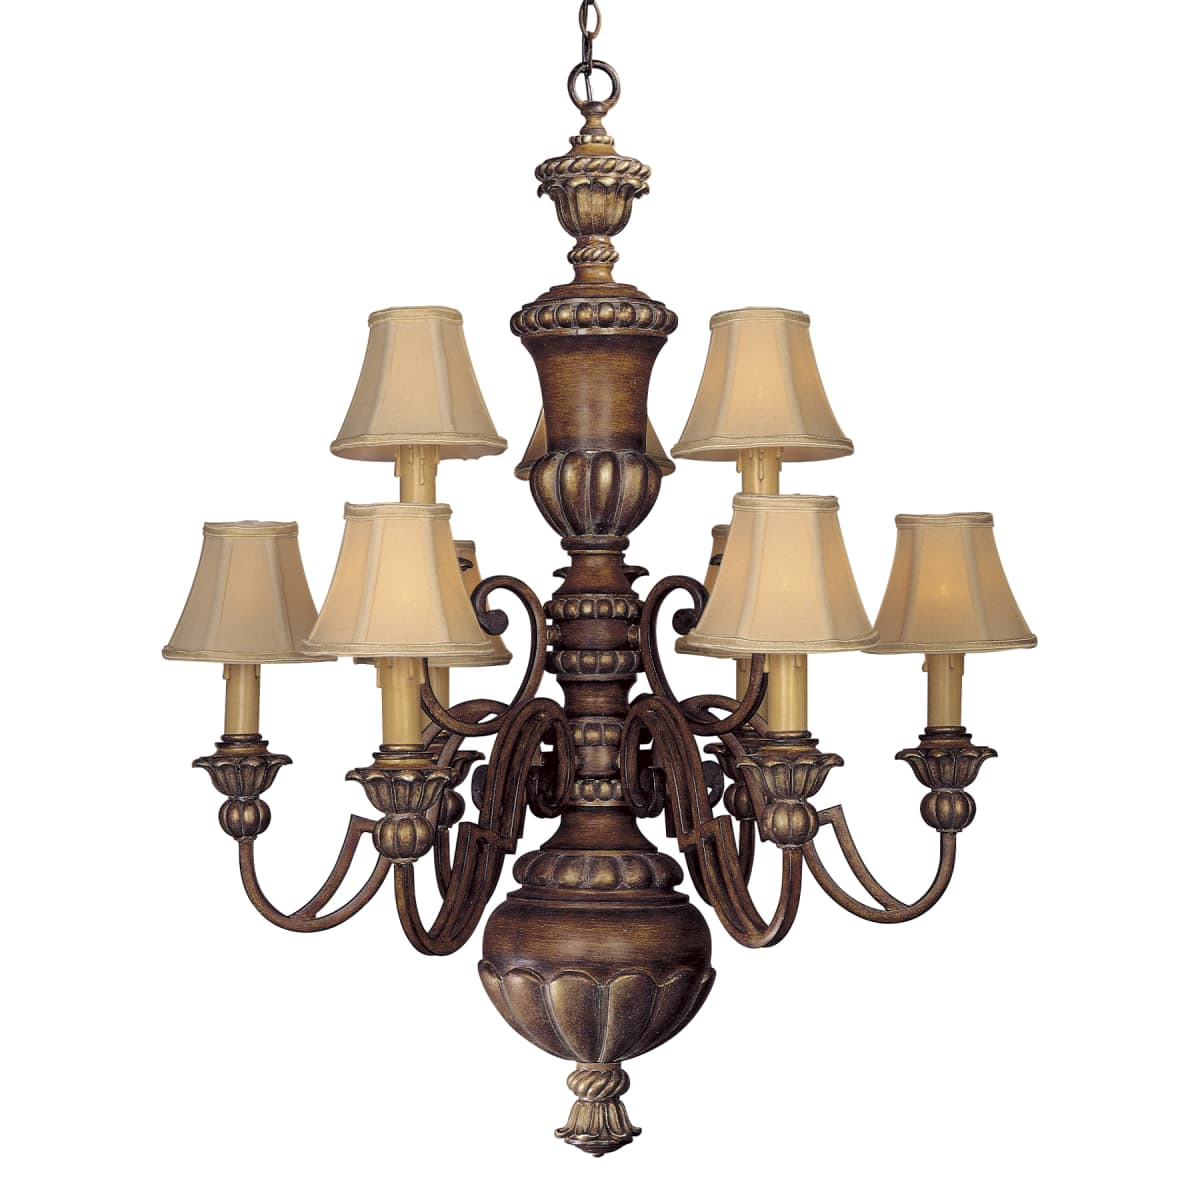 Minka Lavery 947 126 Belcaro Walnut 9 Light Up Lighting